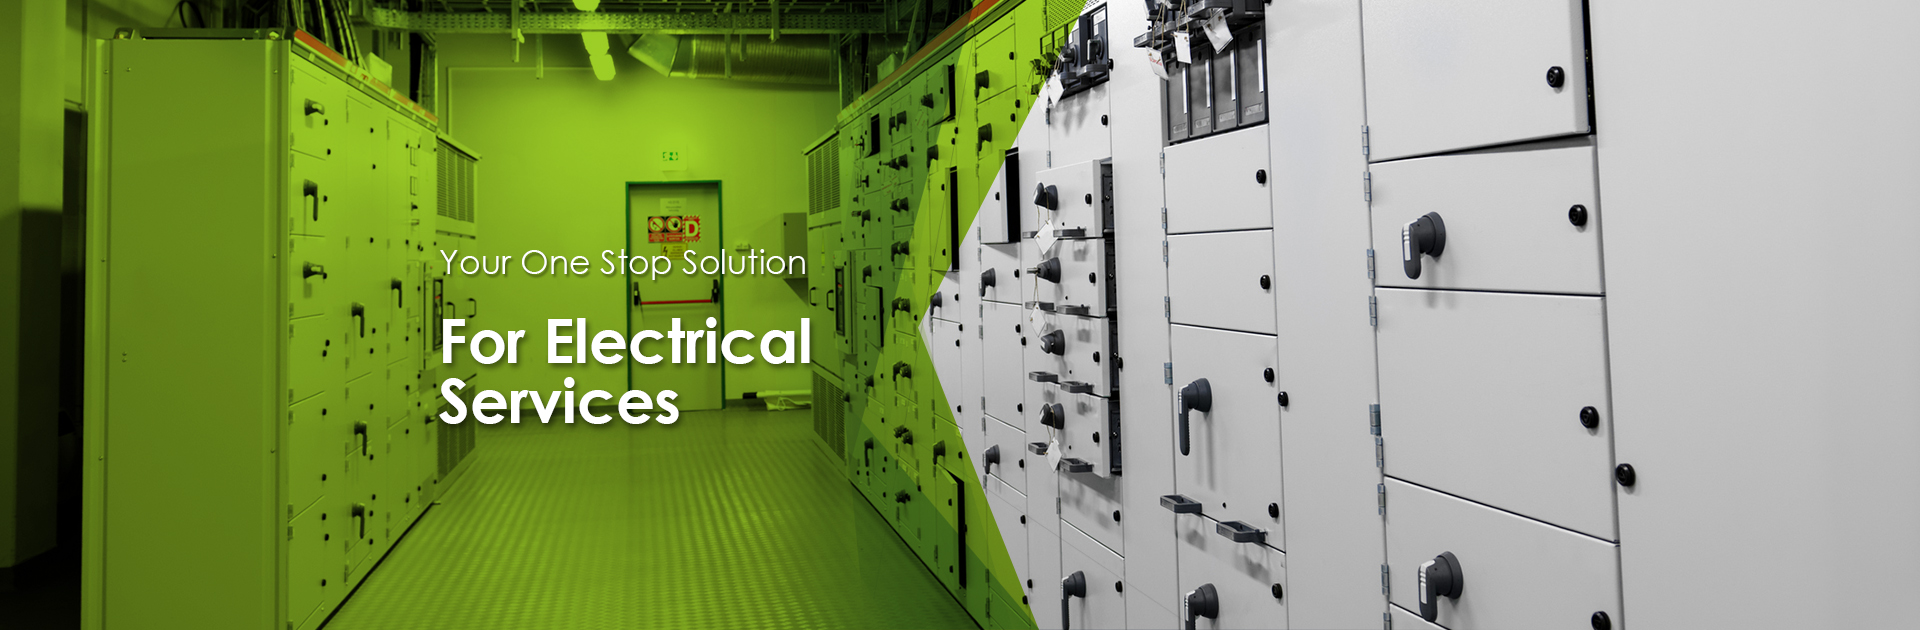 Your One Stop Solution for Electrical Services